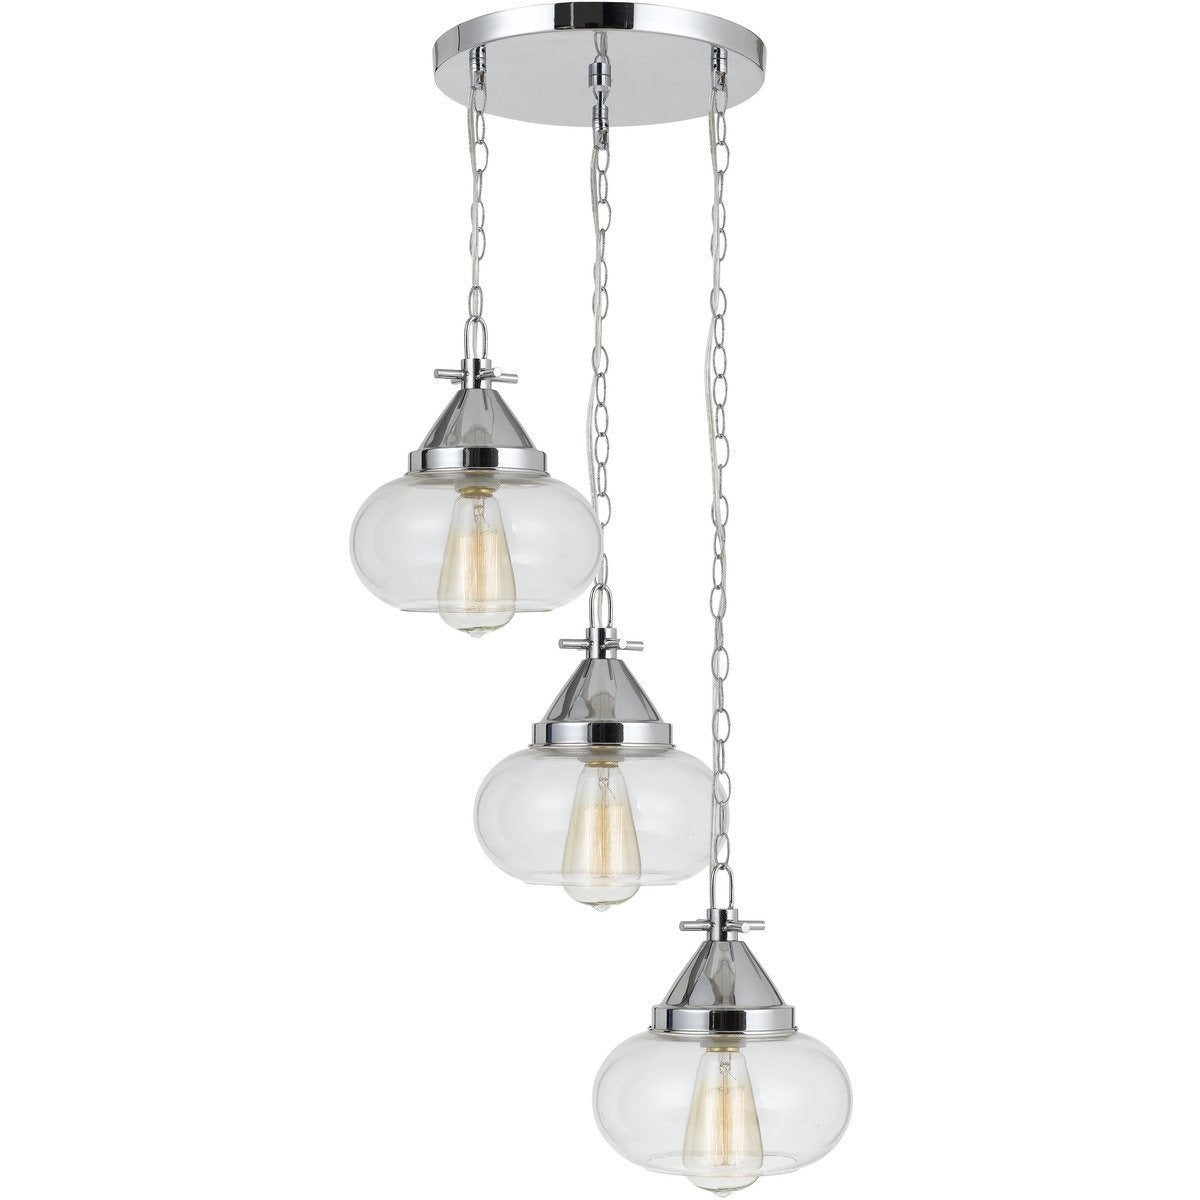 Chandeliers & Pendants - 3 Bulb Wind Chime Design Pendant With Round Glass Shade And Chain, Silver